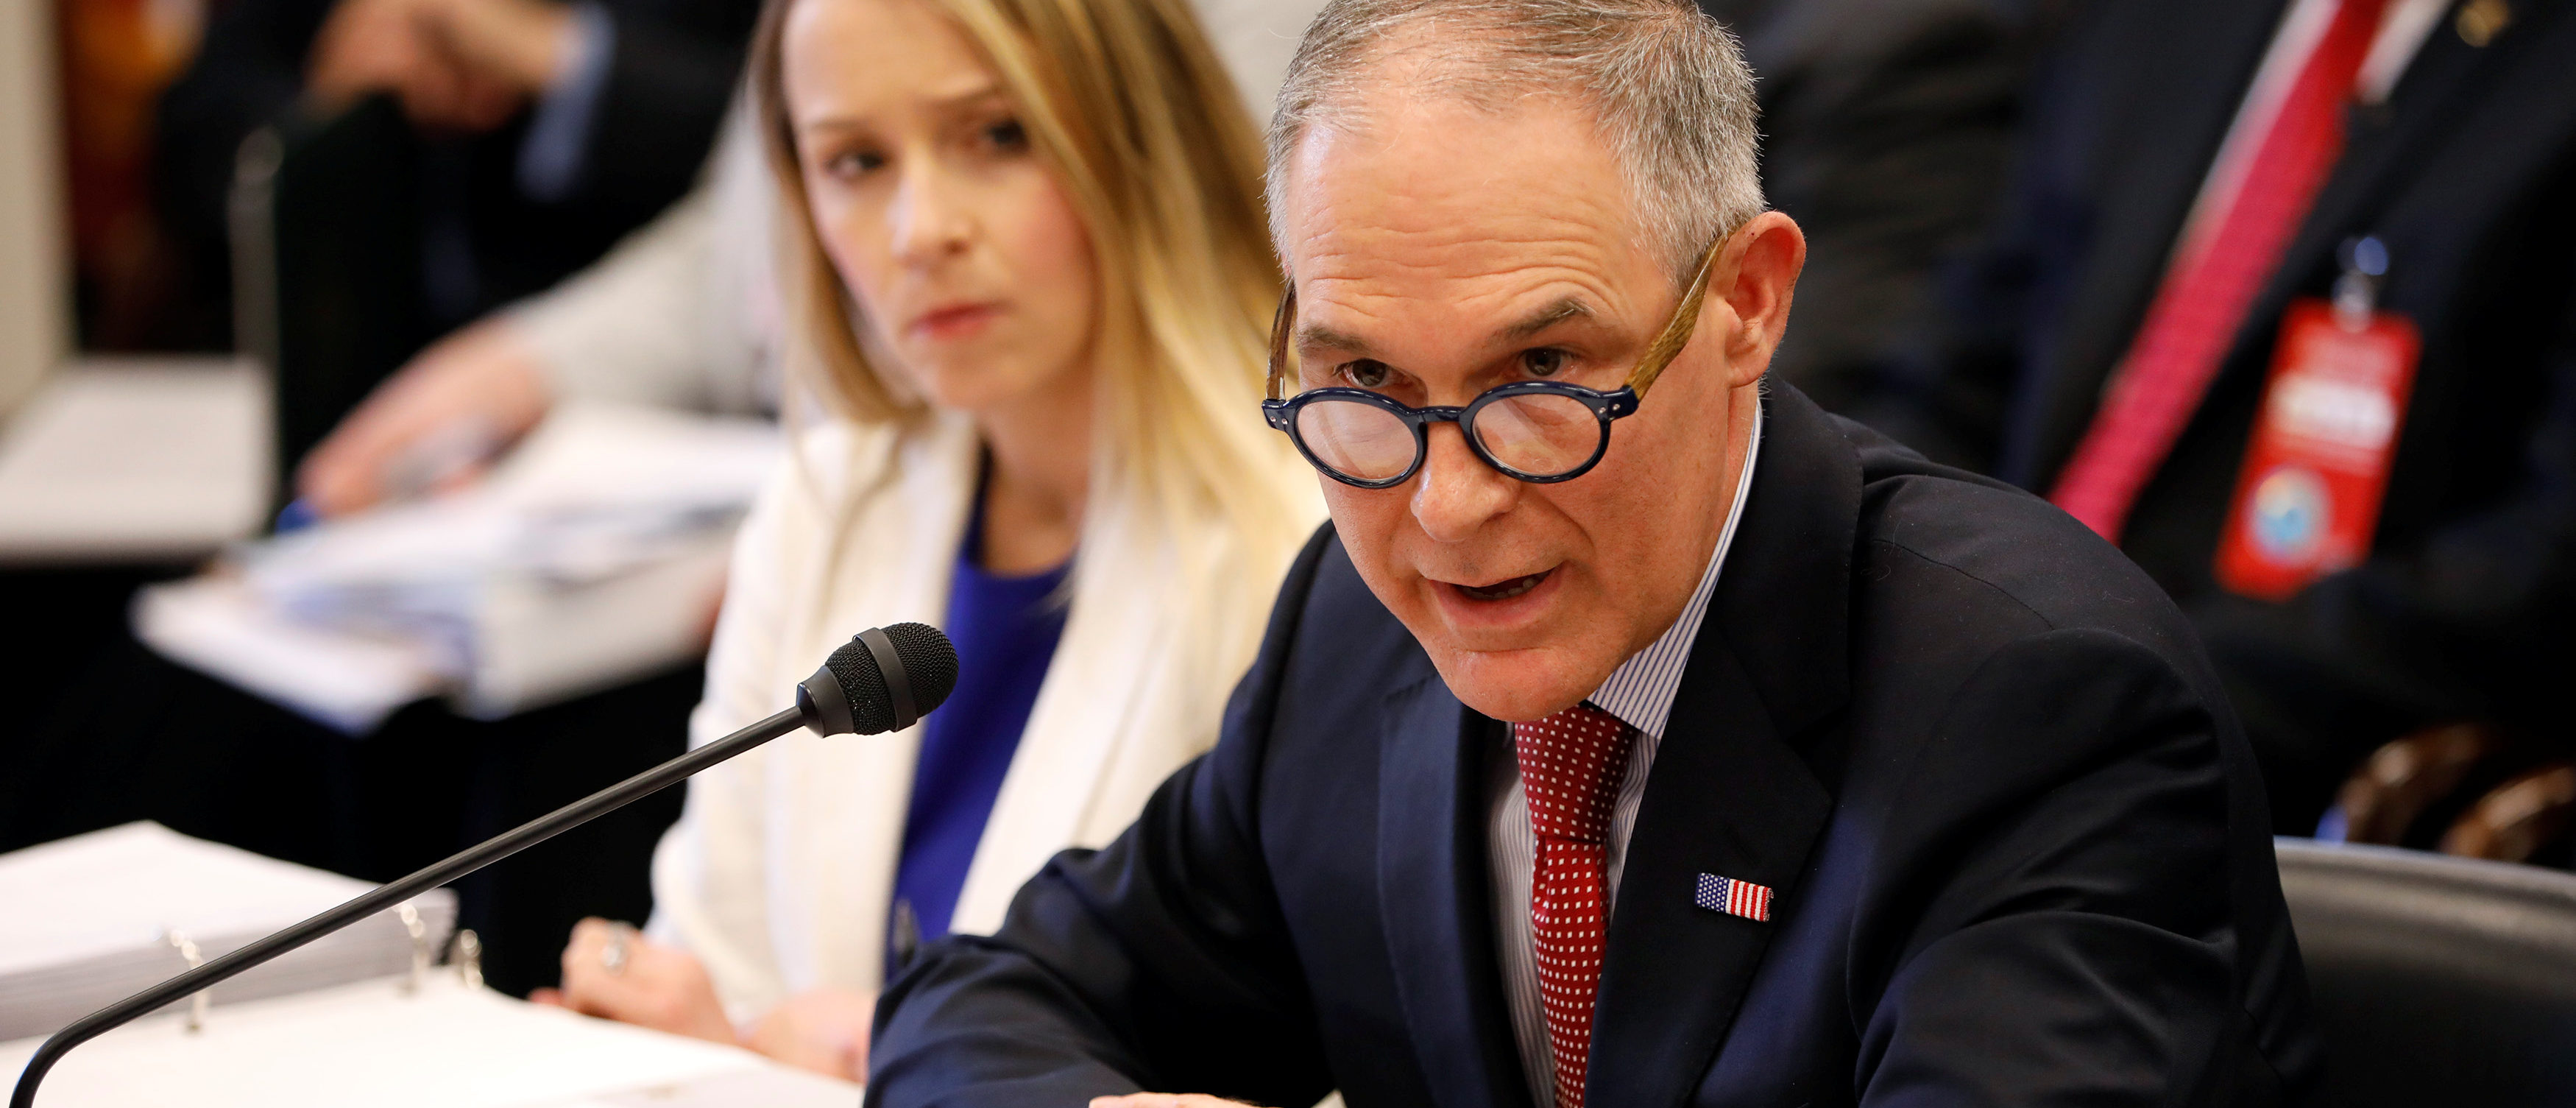 EPA Administrator Scott Pruitt testifies before the House Appropriations Committee Subcommittee on Interior, Environment, and Related Agencies Subcommittee on Capitol Hill in Washington